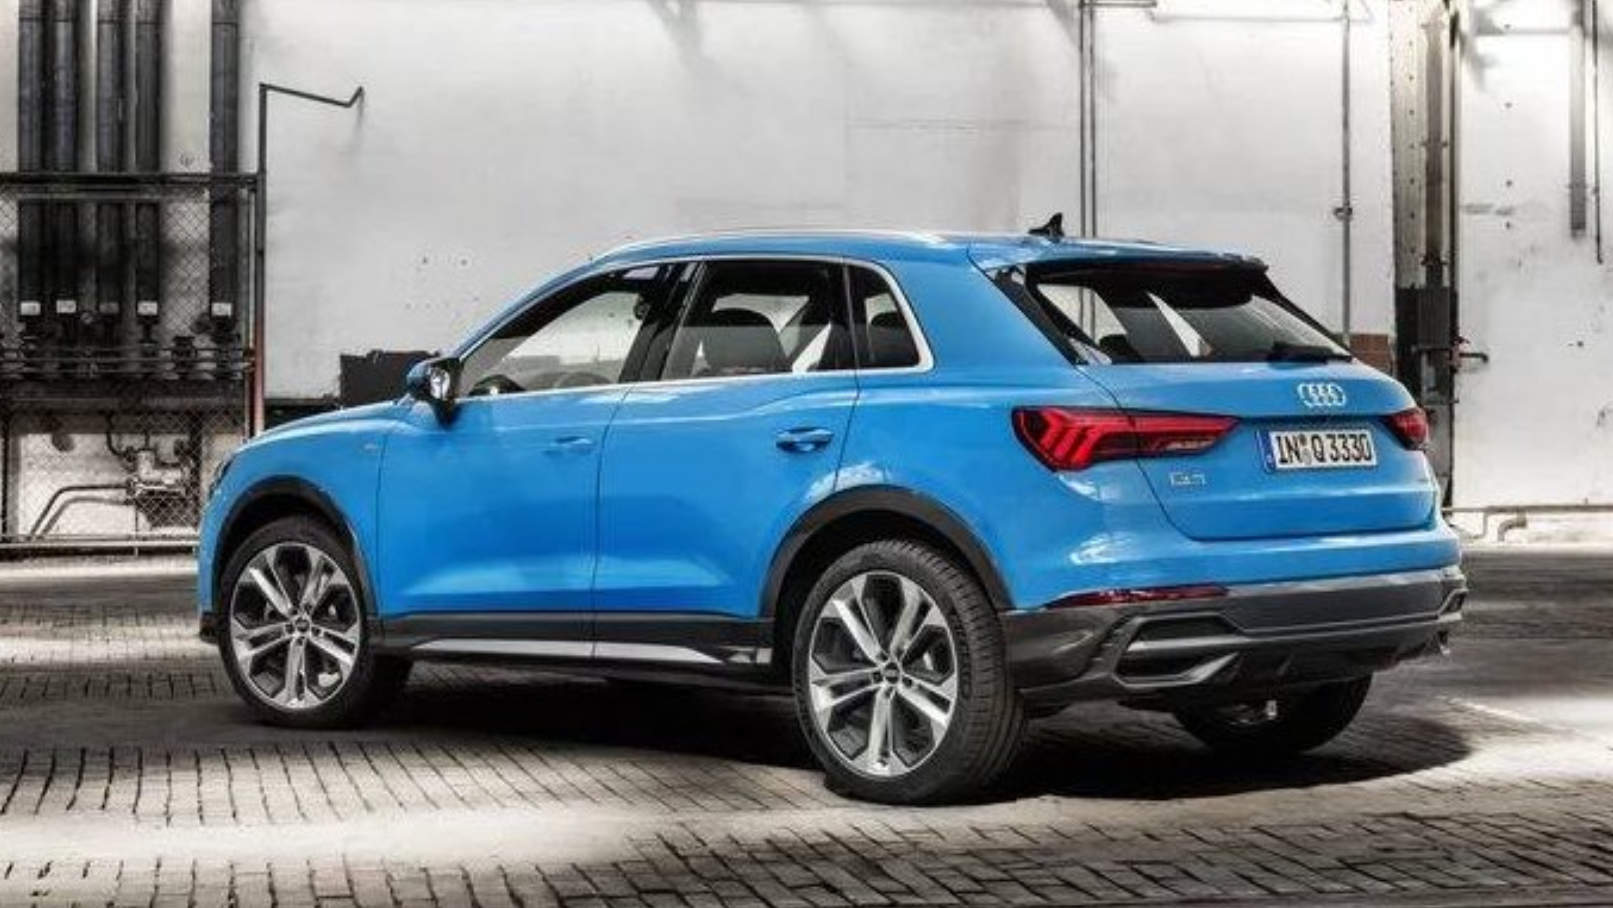 2019 Audi Q3 Suv Photos Leaked Ahead Of Global Debut Today Volvo